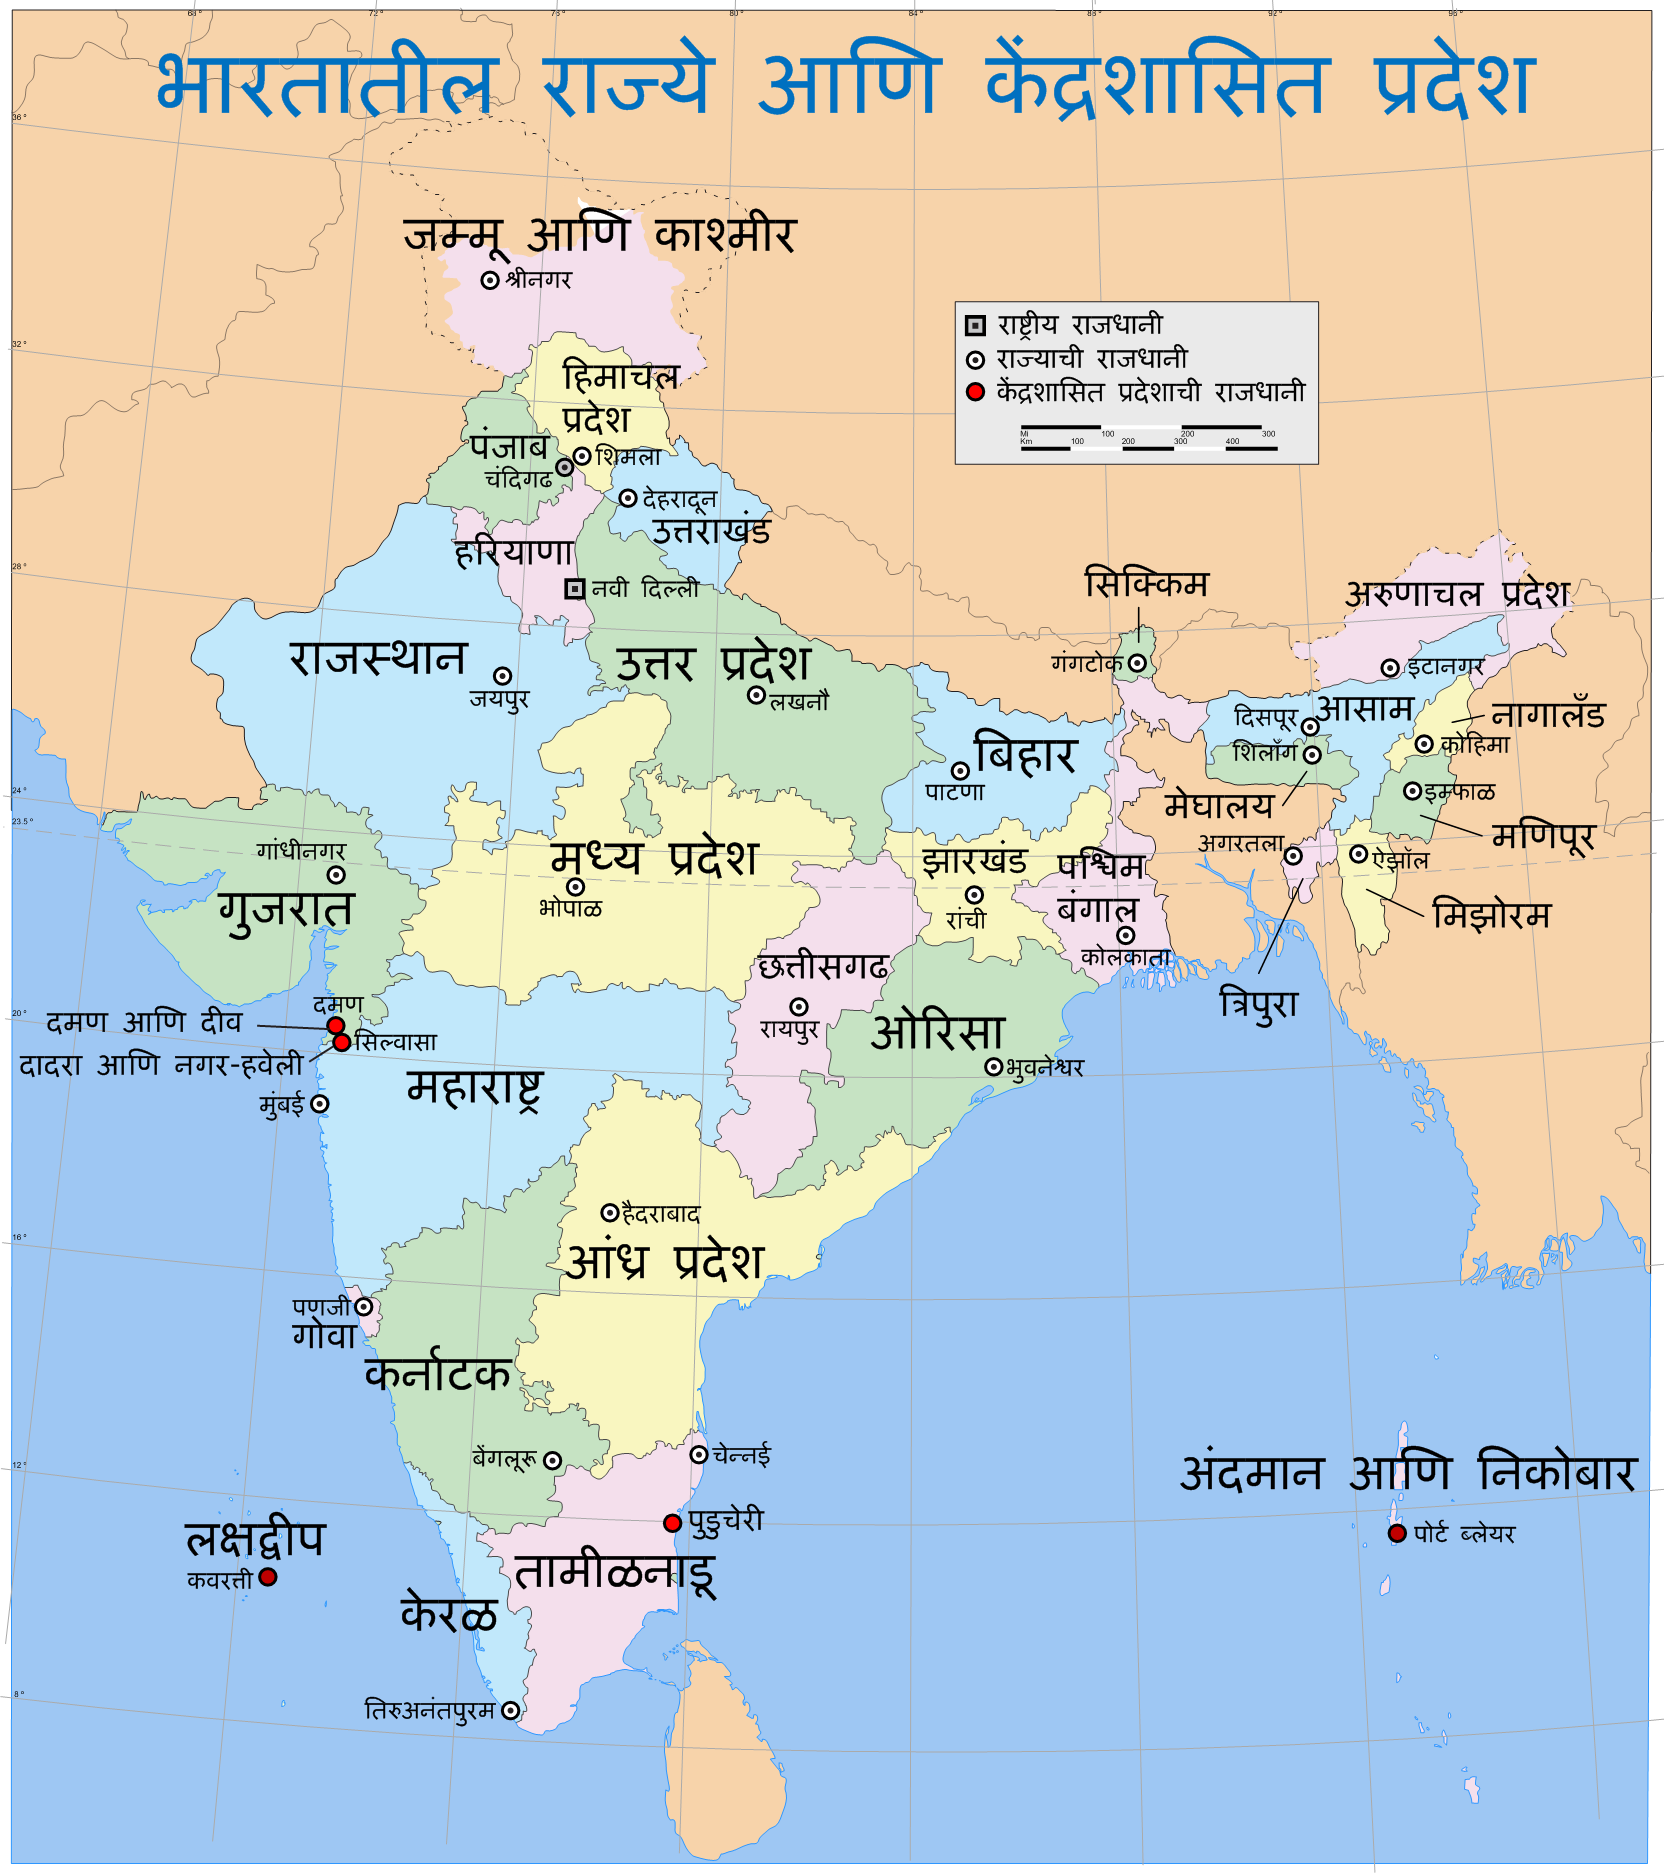 recent political map of india with union territories India States And Union Territories Map Geography Map India Map Map recent political map of india with union territories